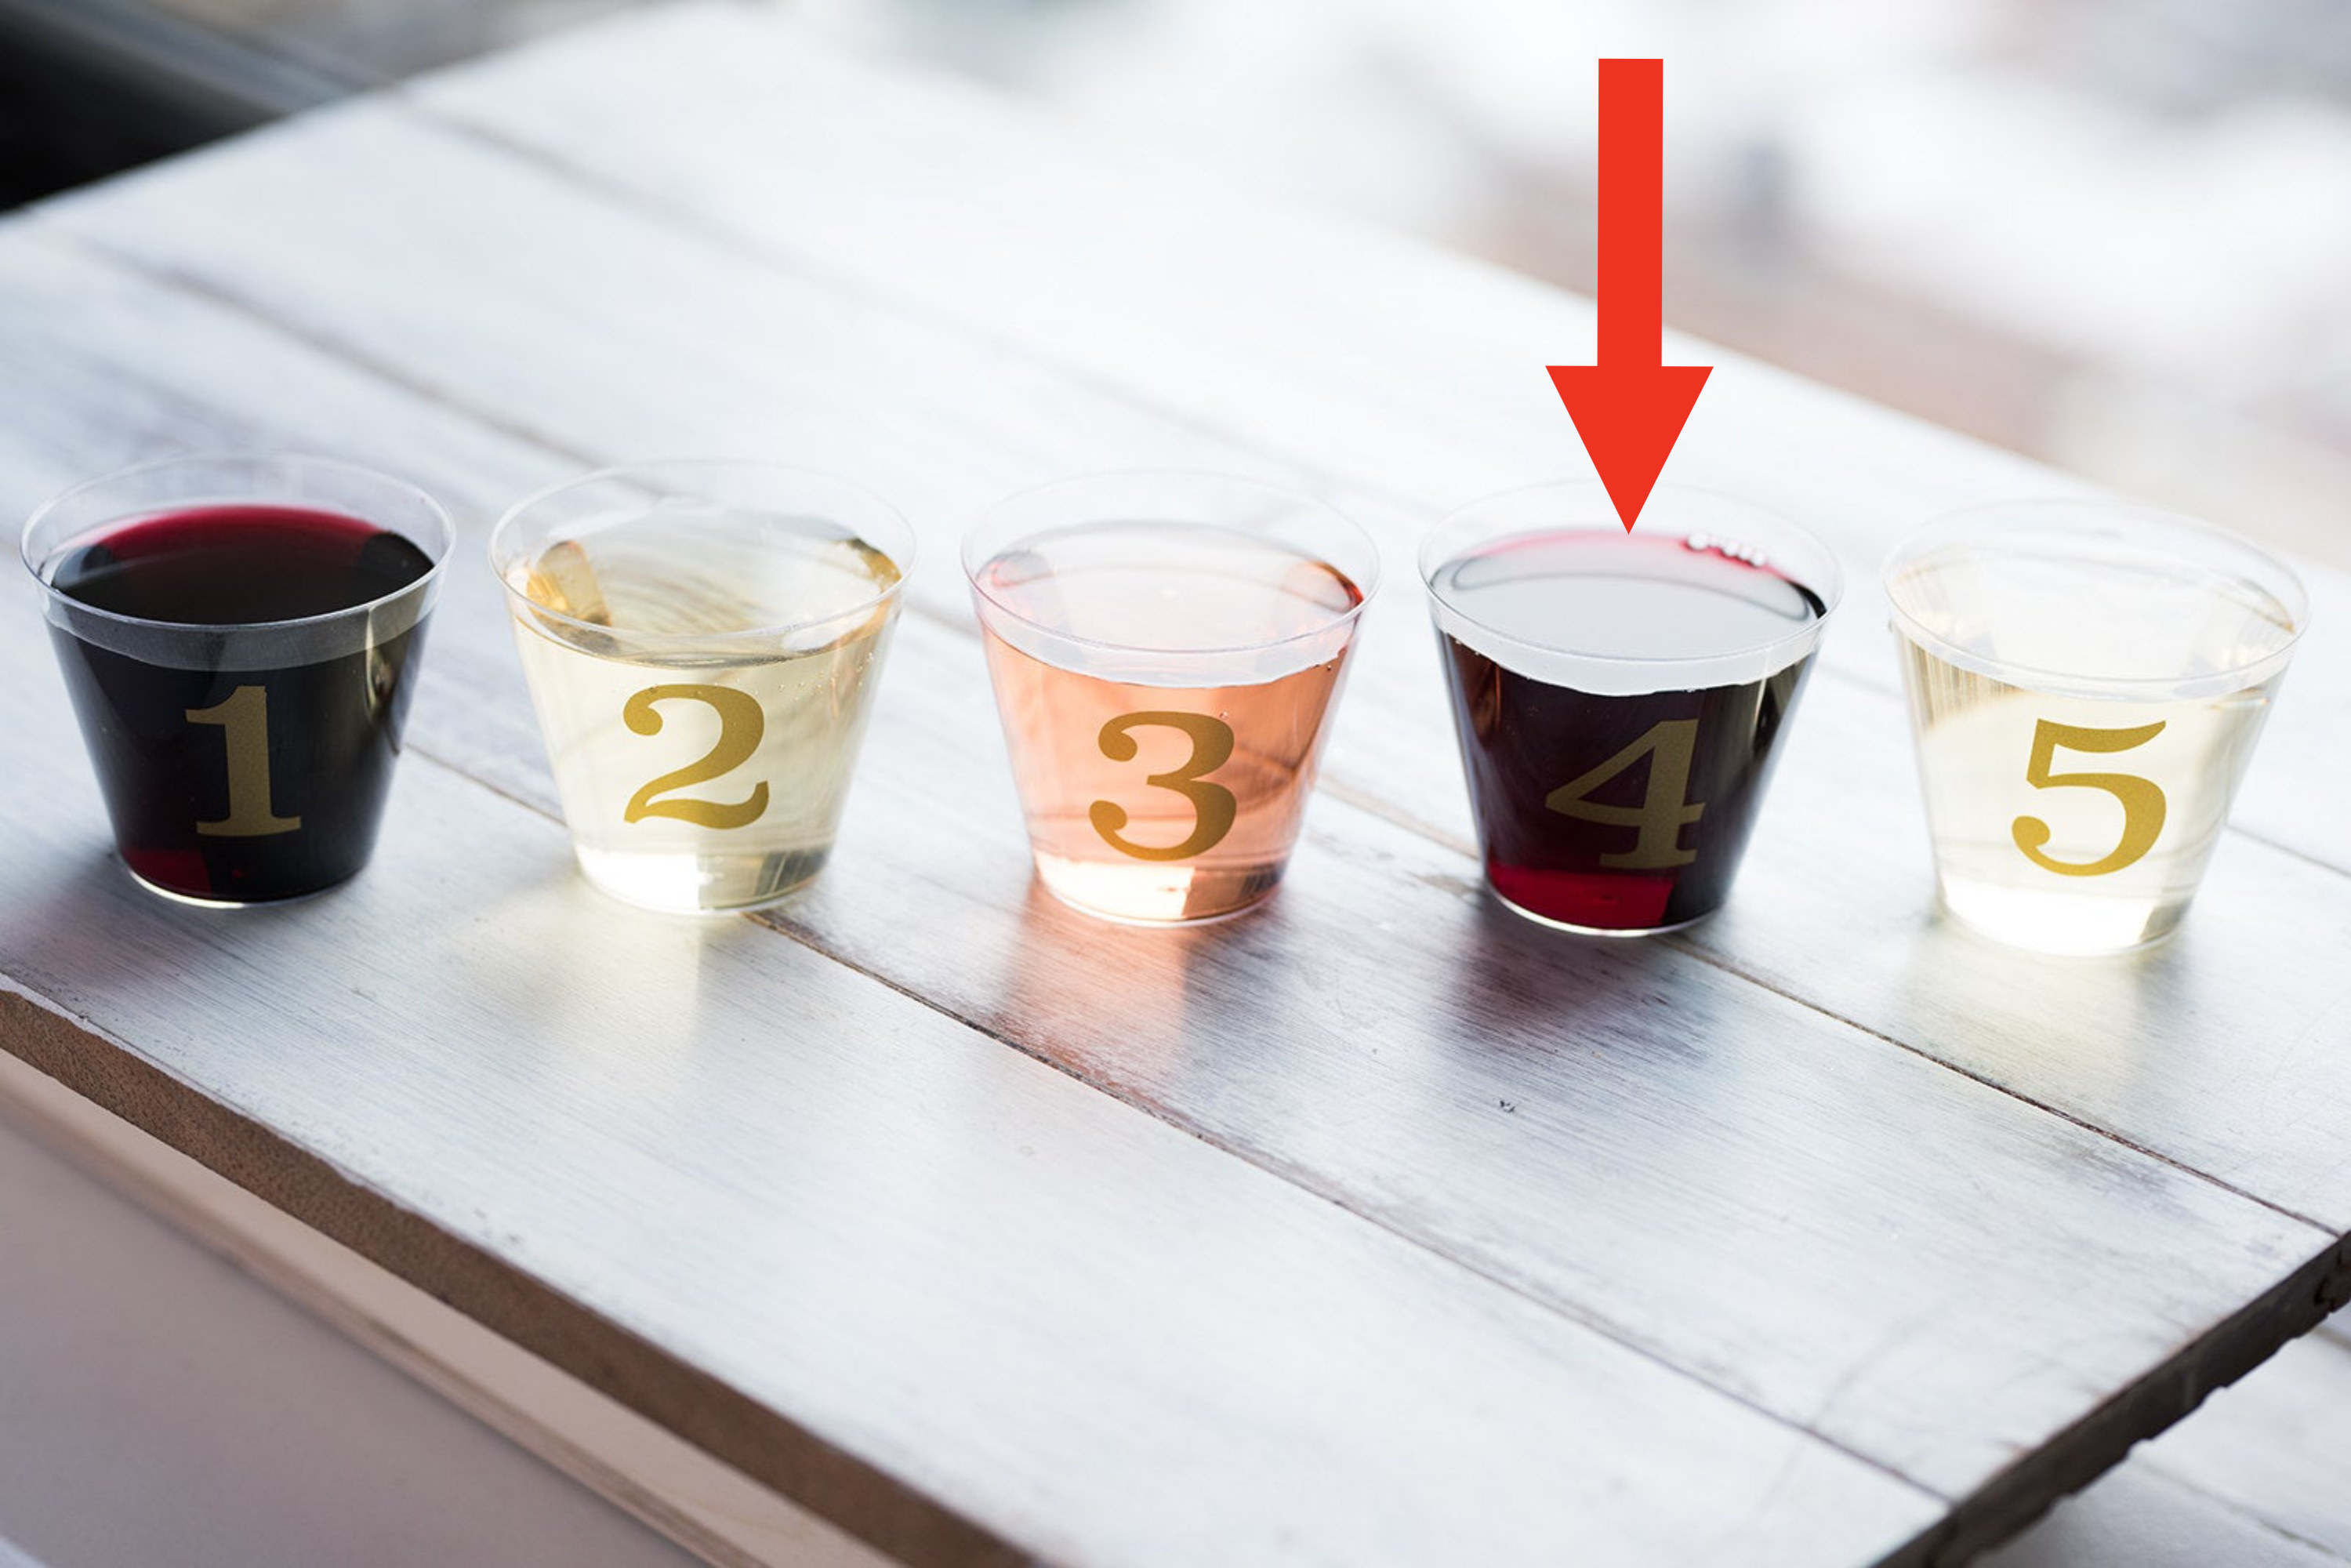 Several alcoholic beverages next to each other, with an arrow pointing at the red wine